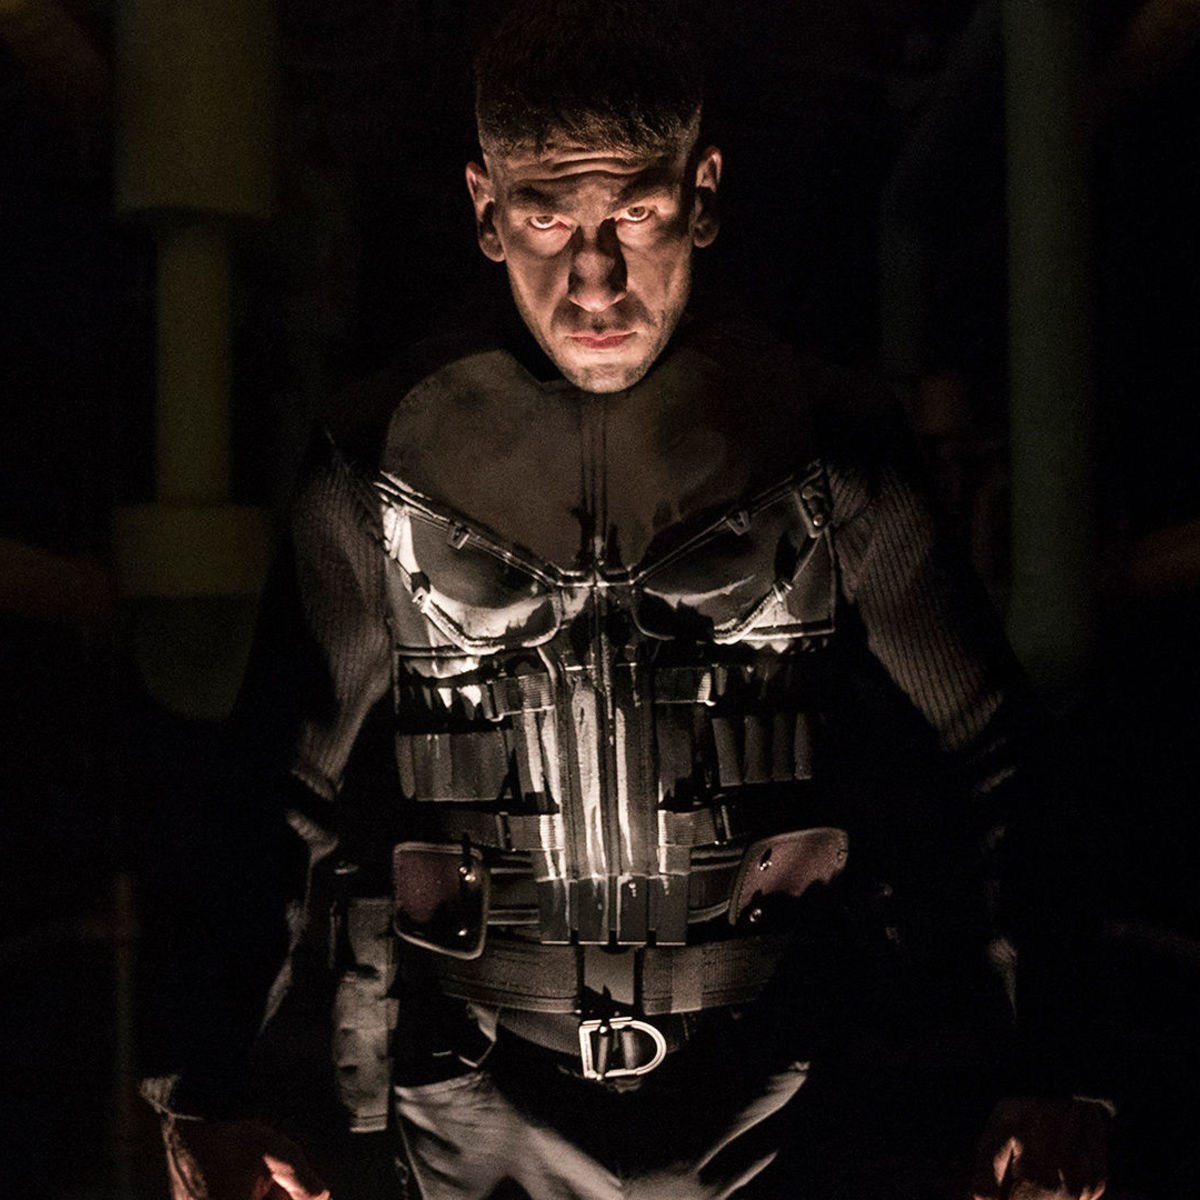 'Marvel's The Punisher' Season 2 Coming To Netflix in January